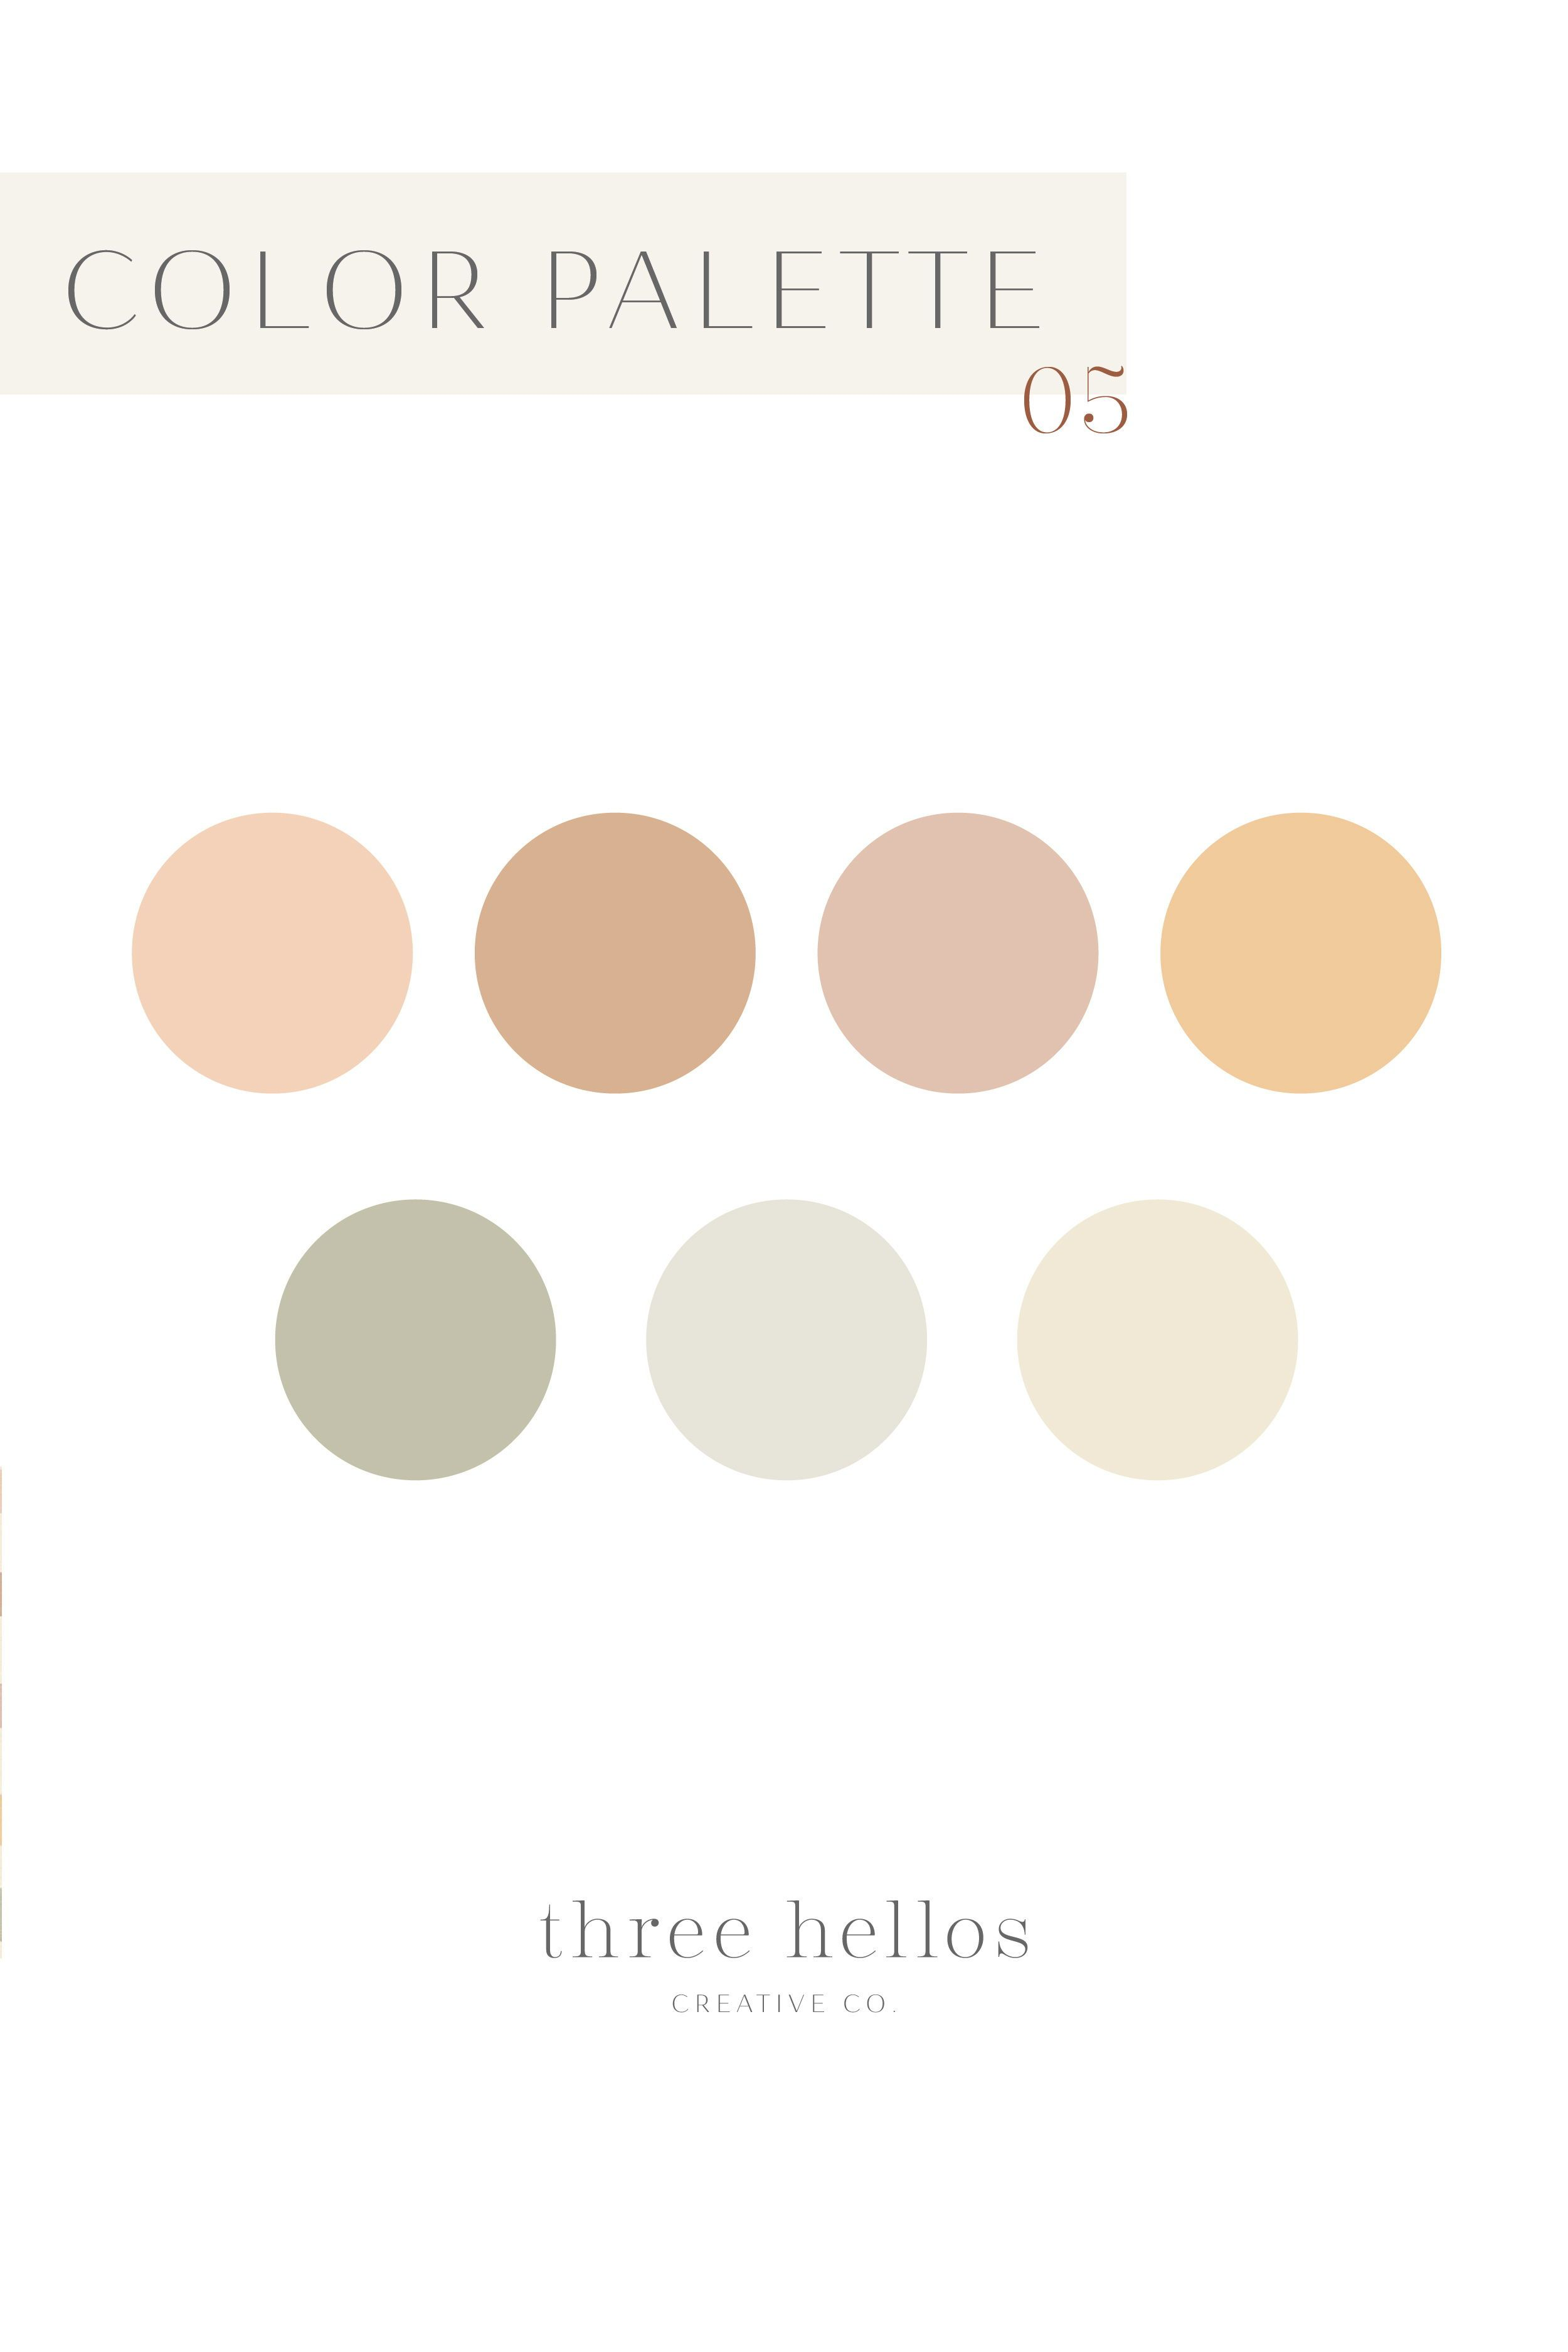 Three Hellos | Artisan Branding, Web Design & Stationery for Passionate Creatives and Small Businesses